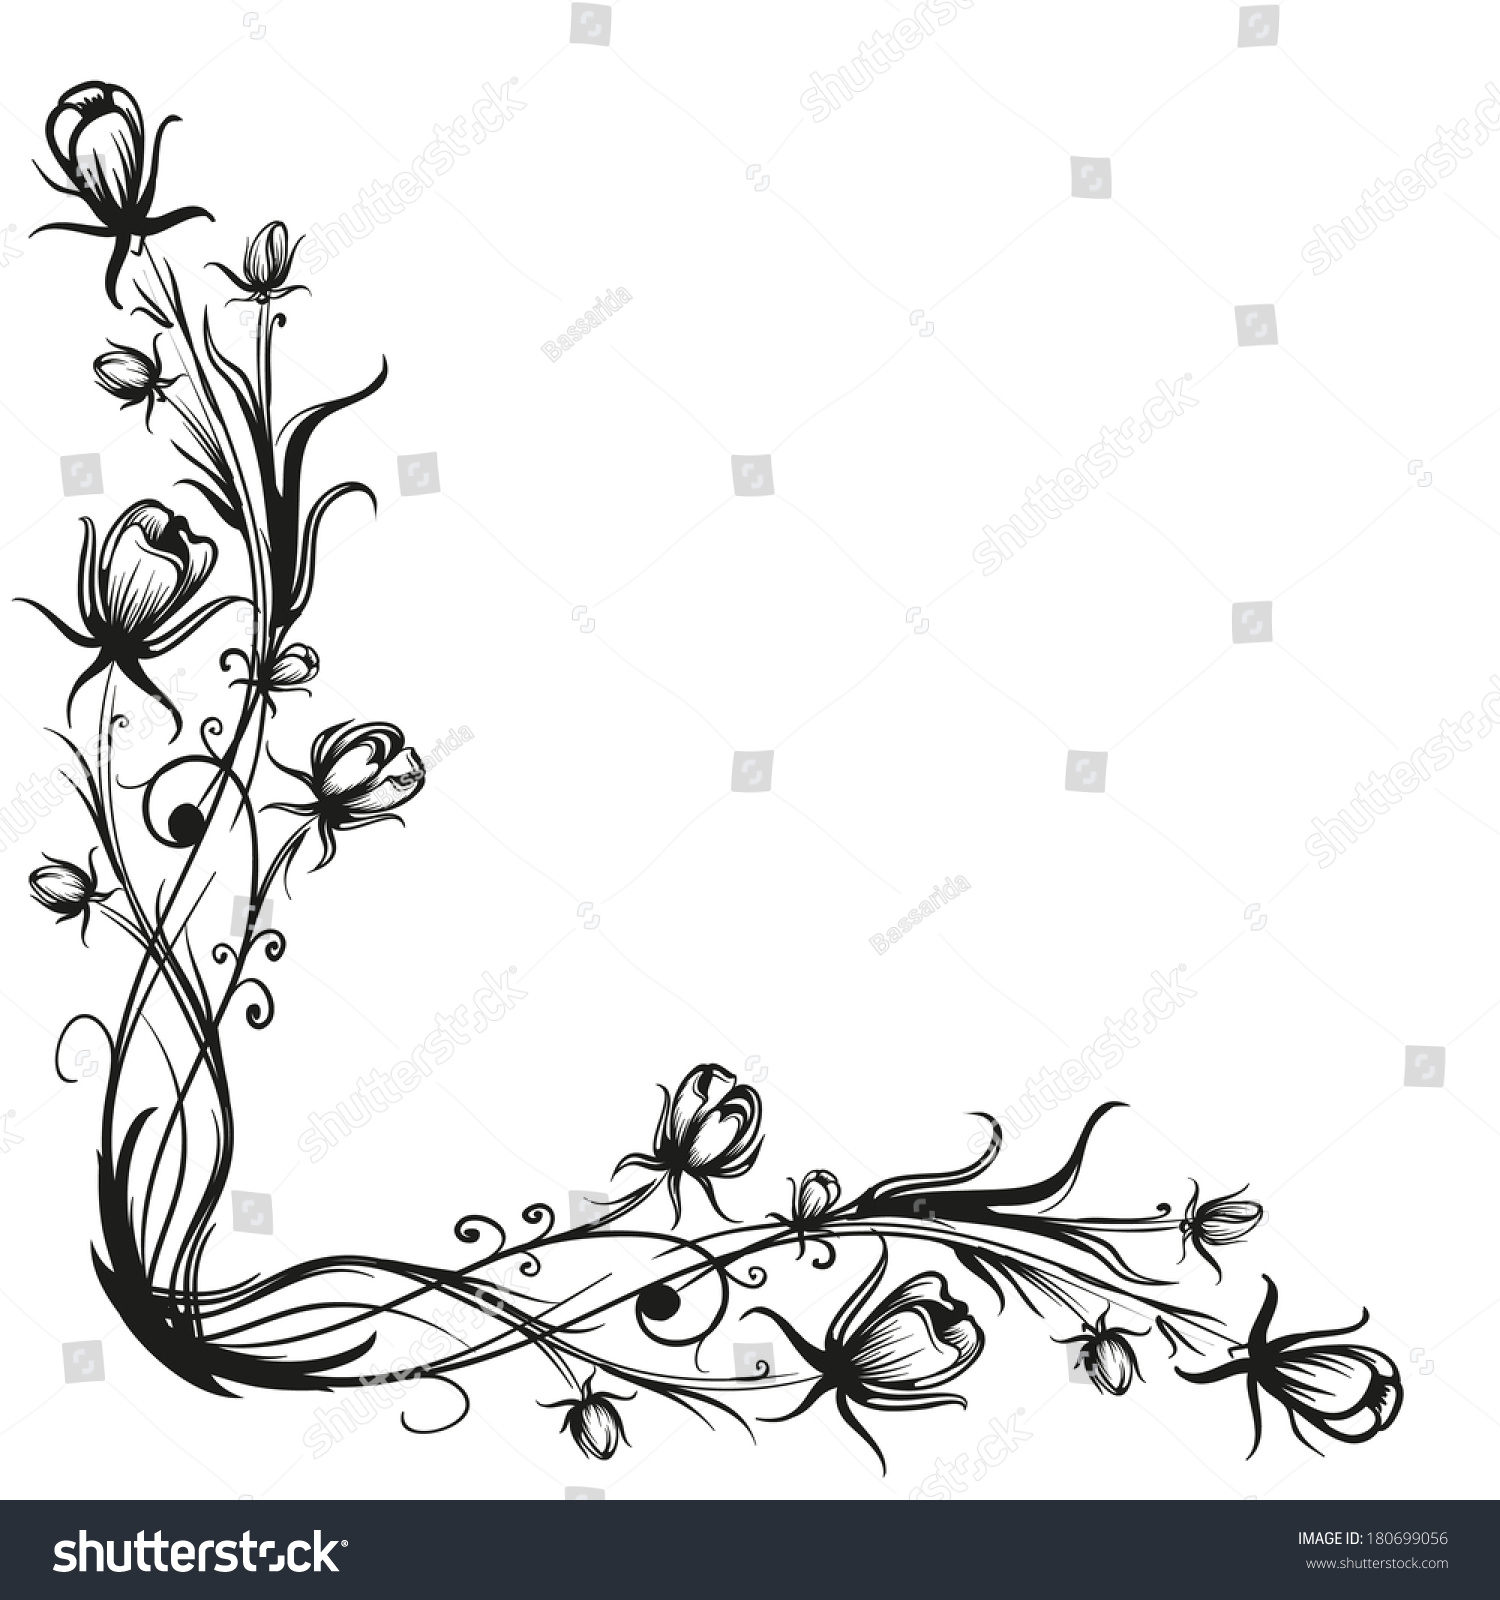 Decorative Black Flower Border Stock Image: Spring Flowers Pattern Border Black Silhouette Stock